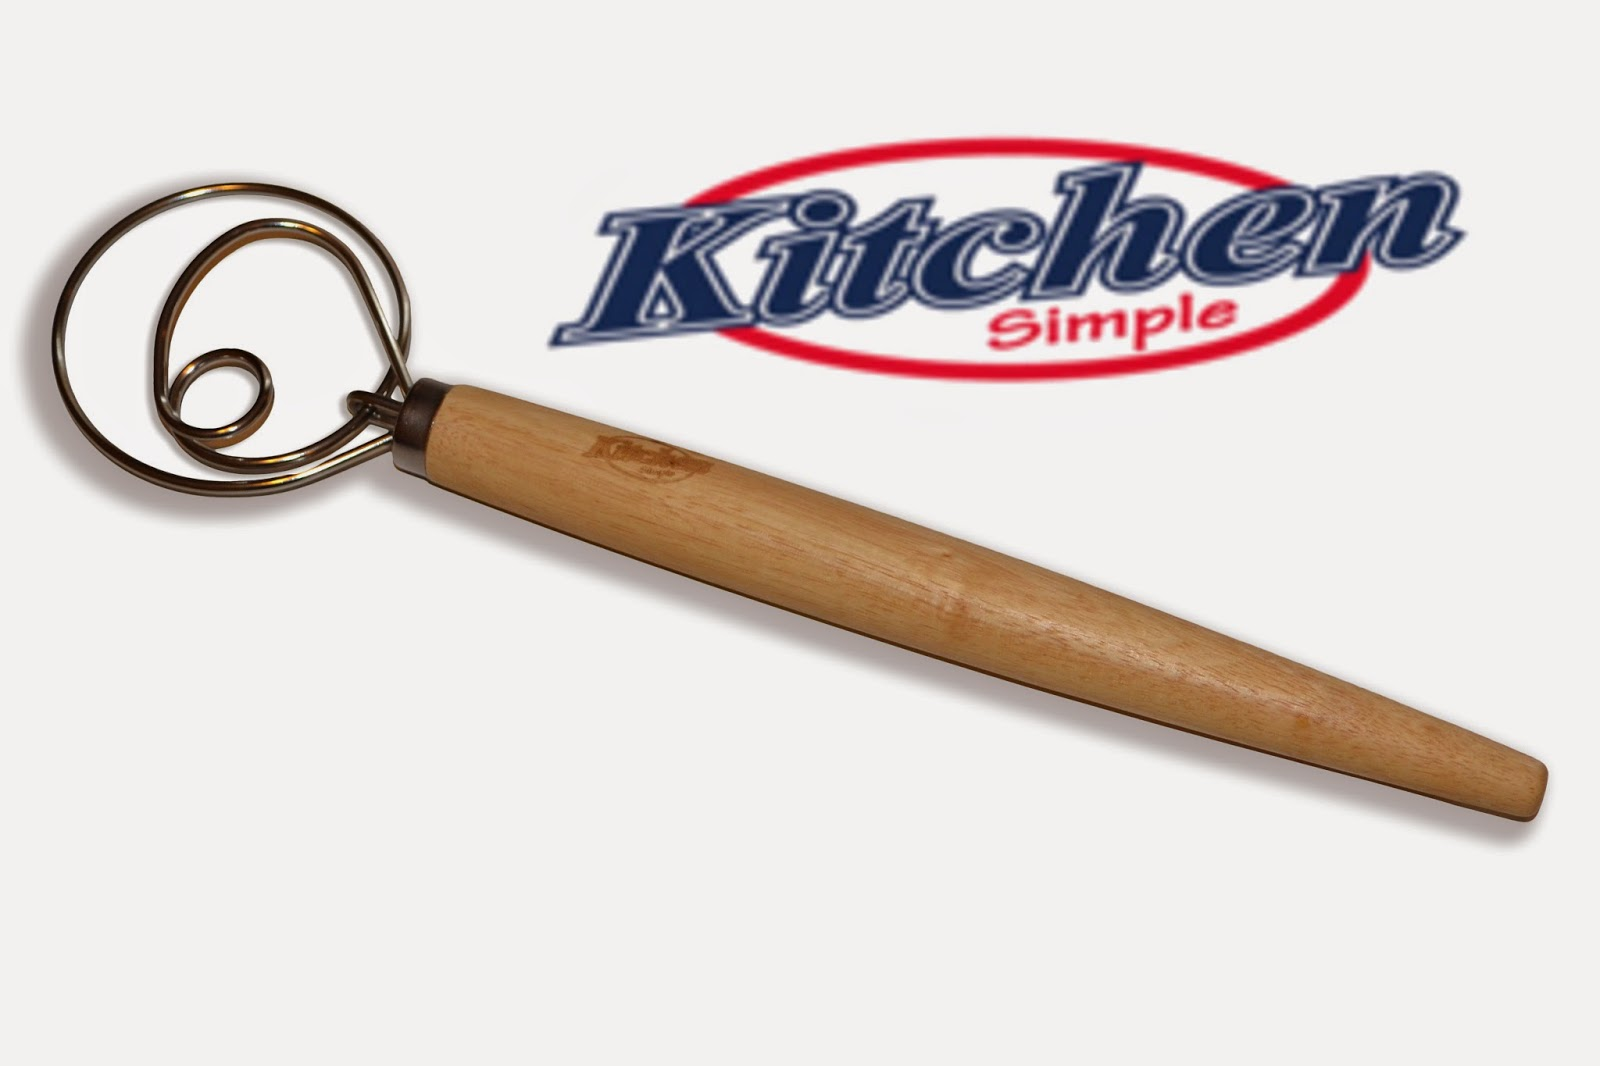 Kitchen Simple Danish Dough Whisk